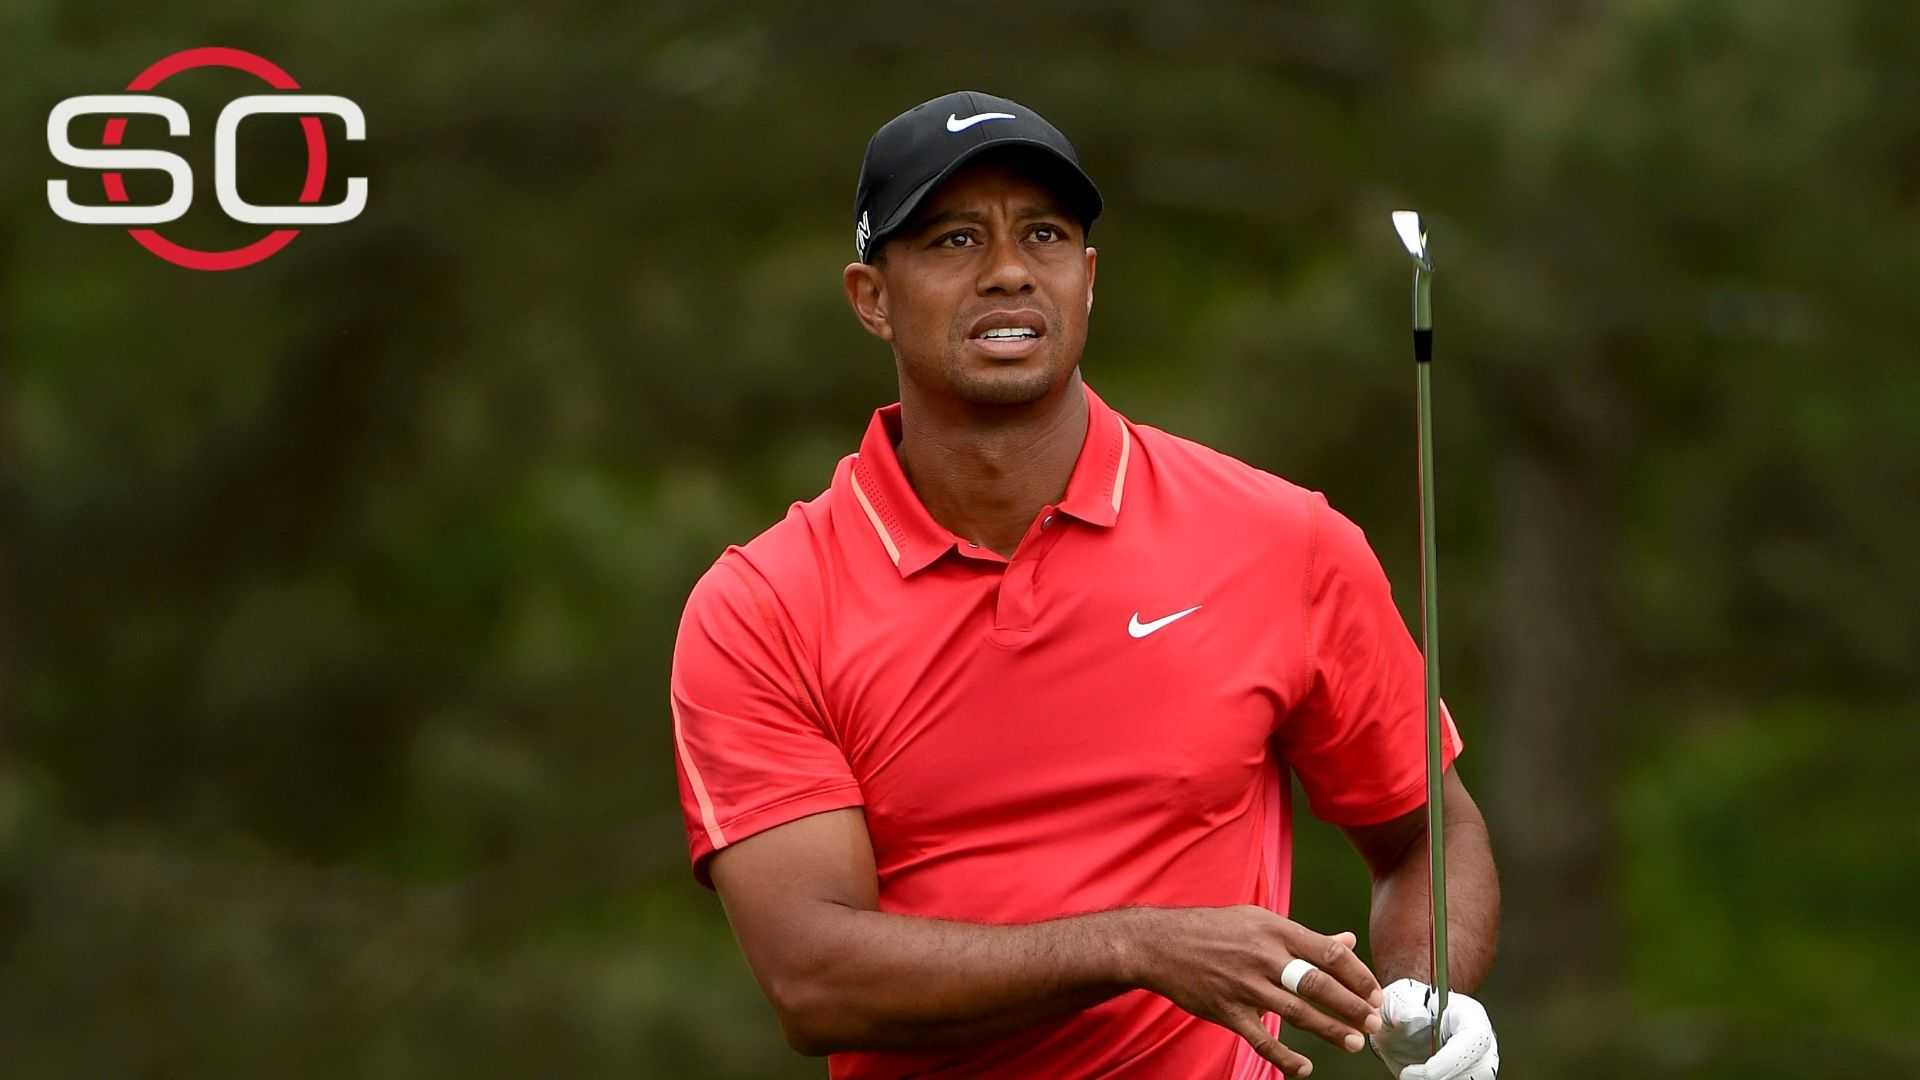 Woods will skip the Masters